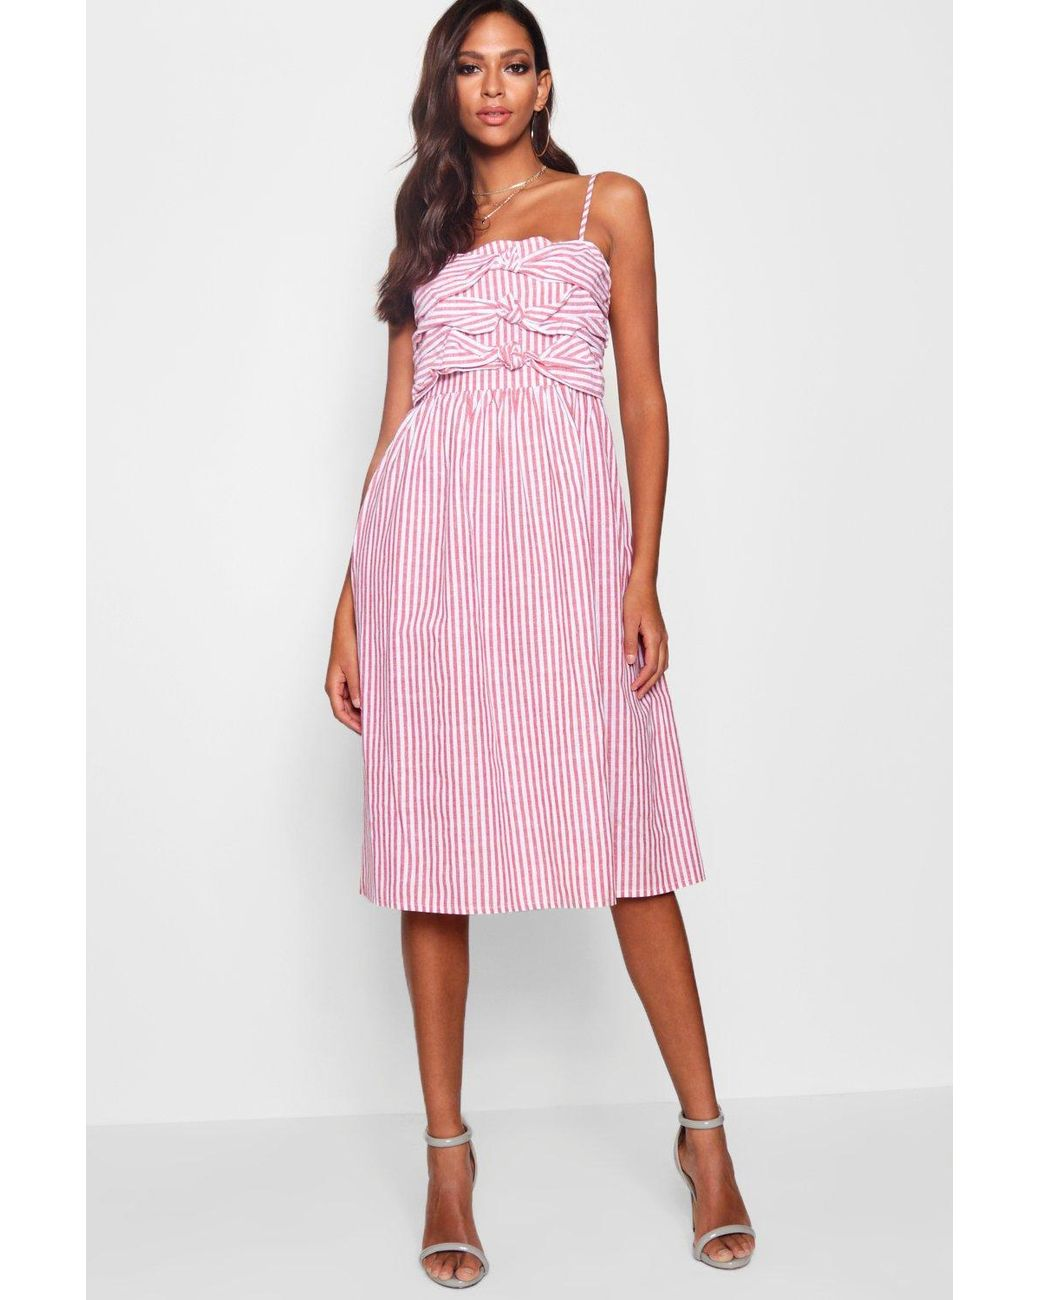 98247f92c004 Boohoo Knot-front Strappy Sundress in Pink - Lyst